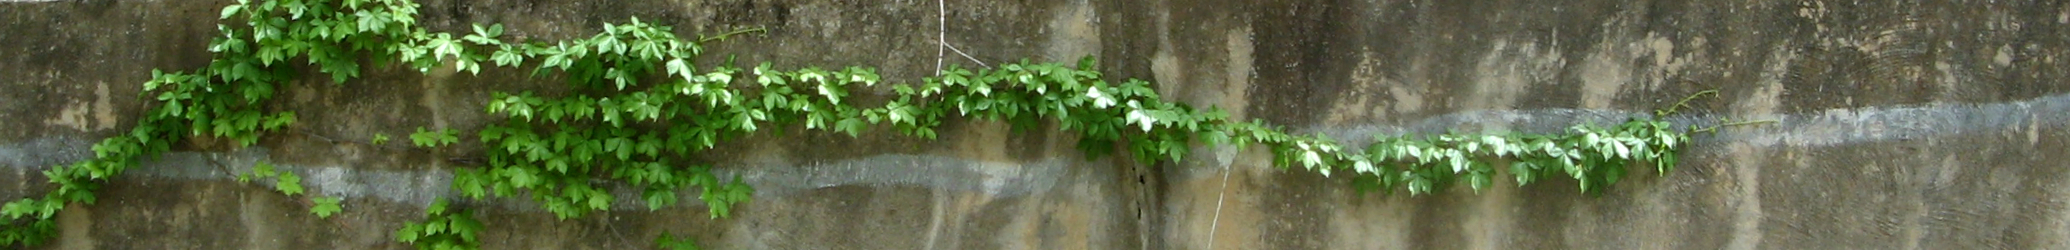 Vine against retaining wall